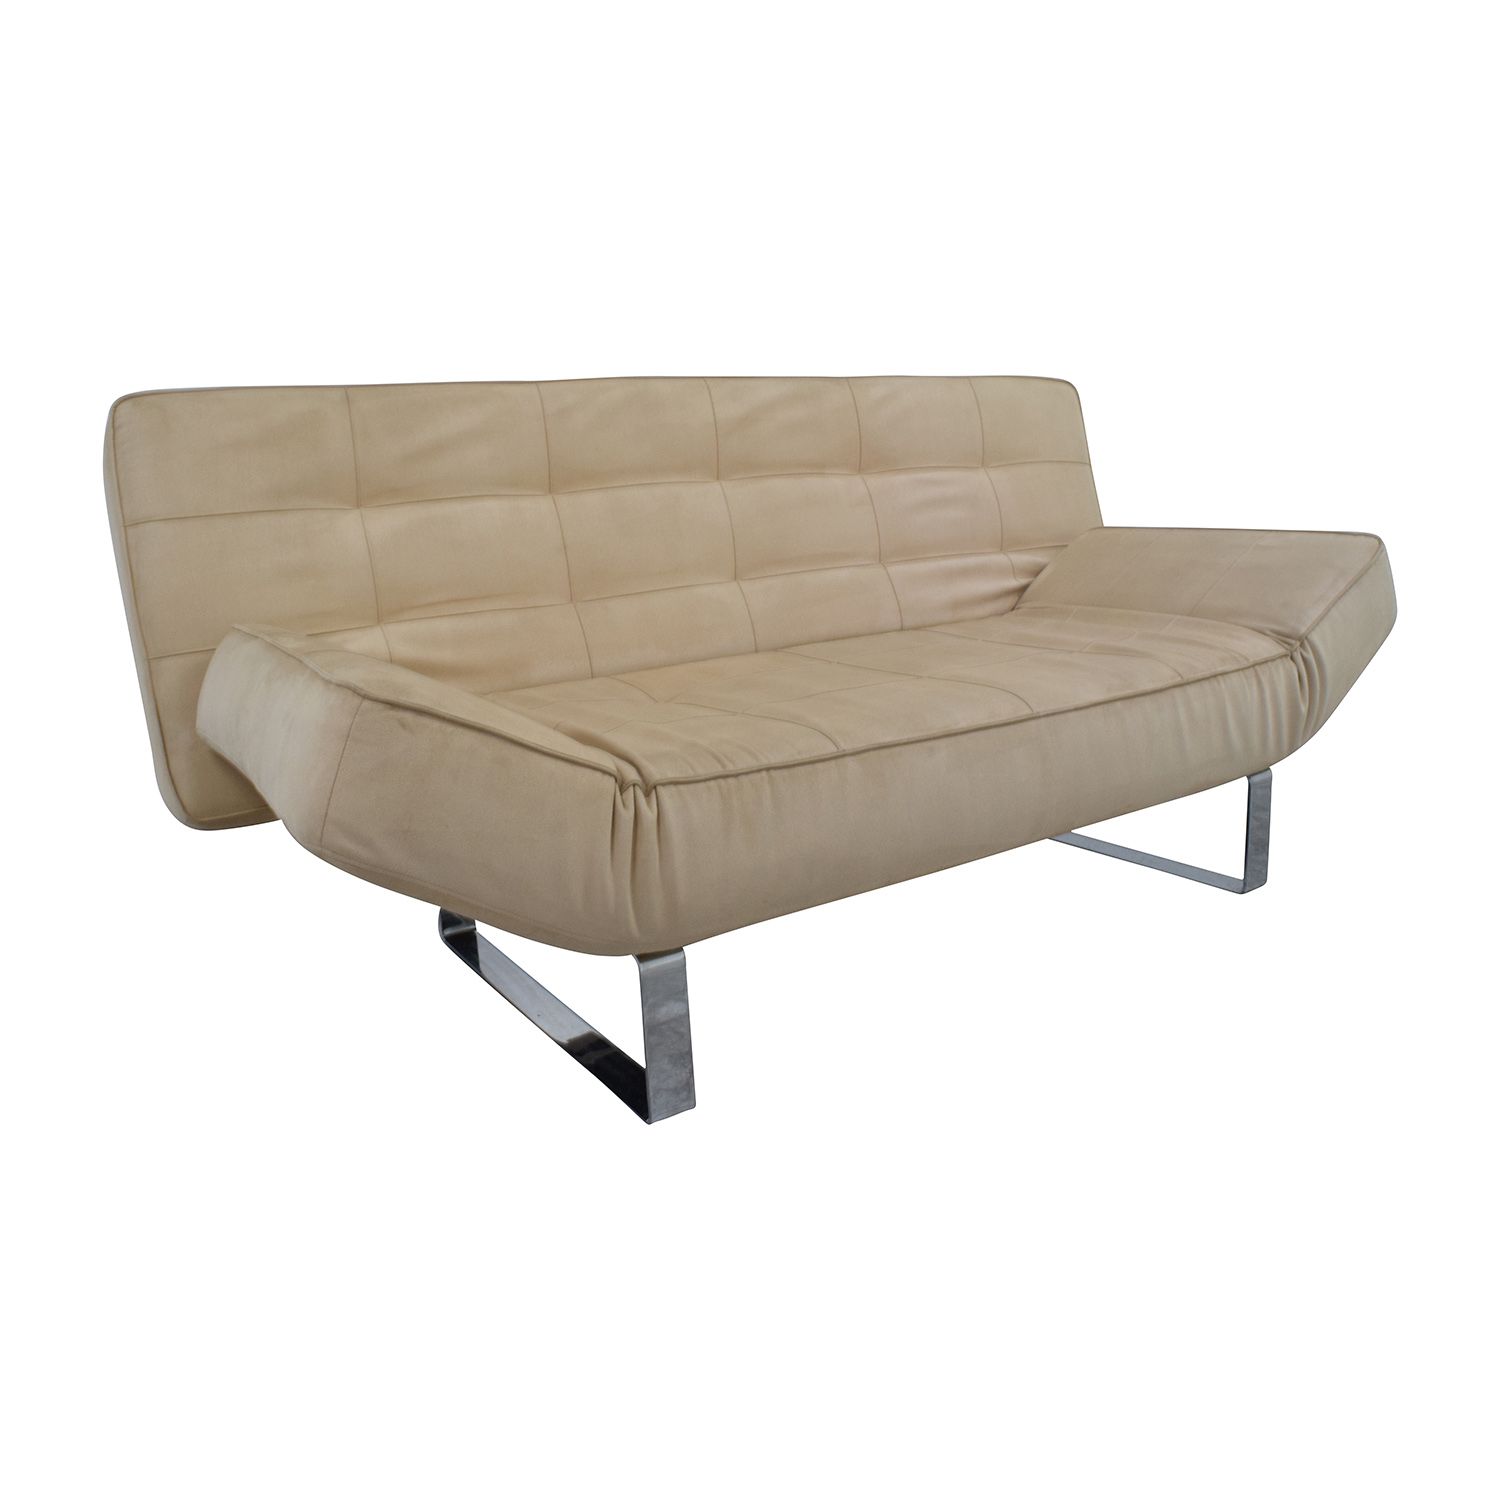 boconcept sleeper sofa review base 63 off zen beige sofas